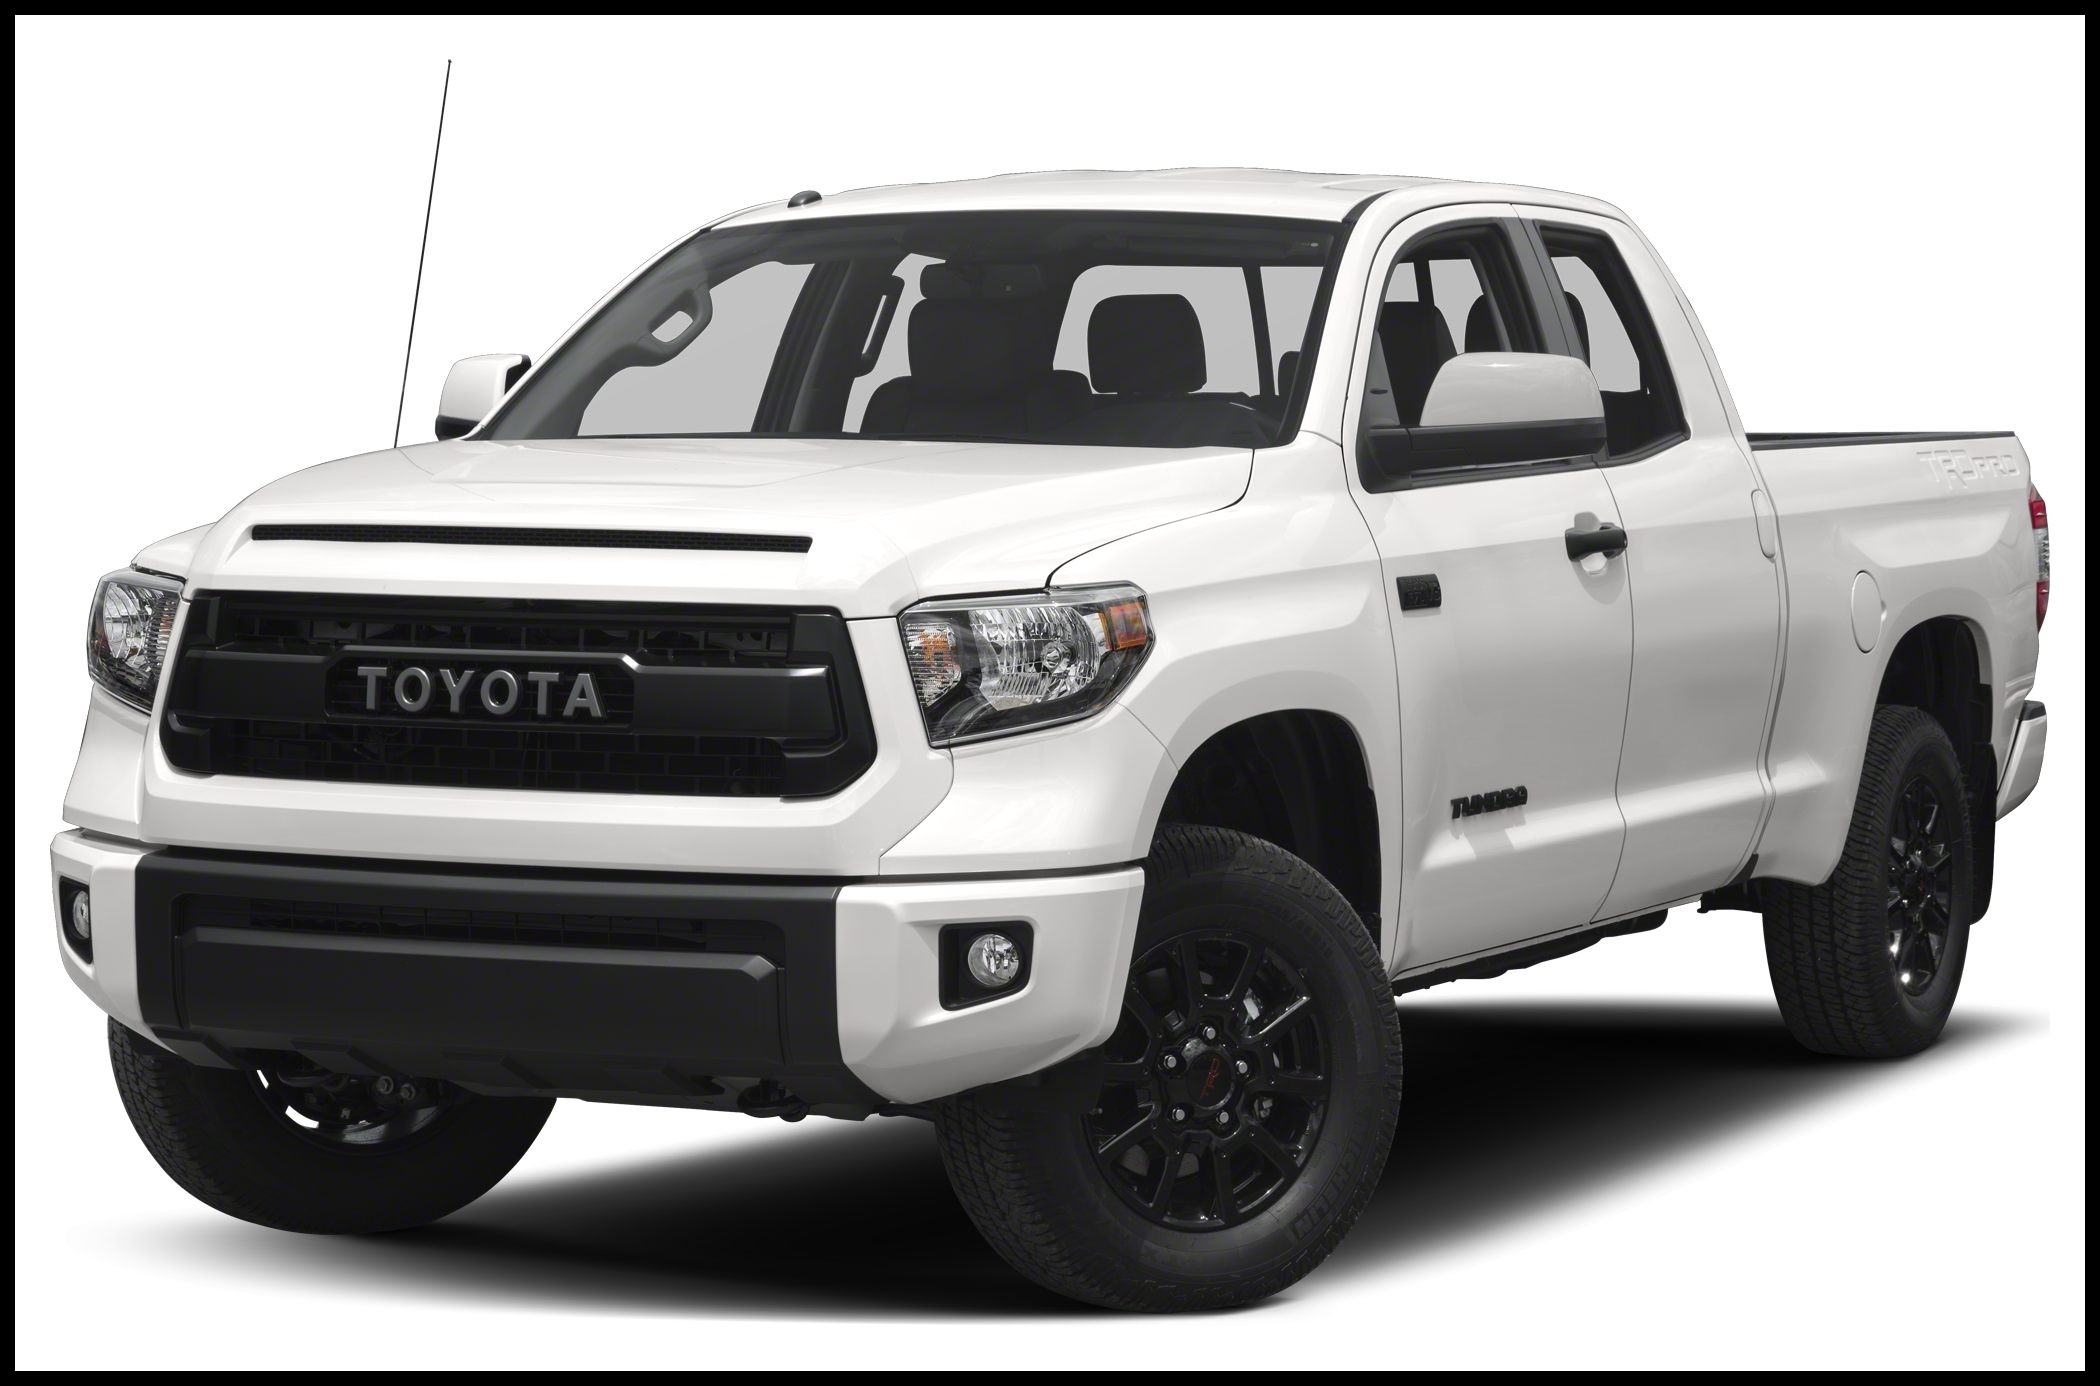 2016 Toyota Tundra TRD Pro 5 7L V8 4x4 Double Cab 6 6 ft box 145 7 in WB Pricing and Options